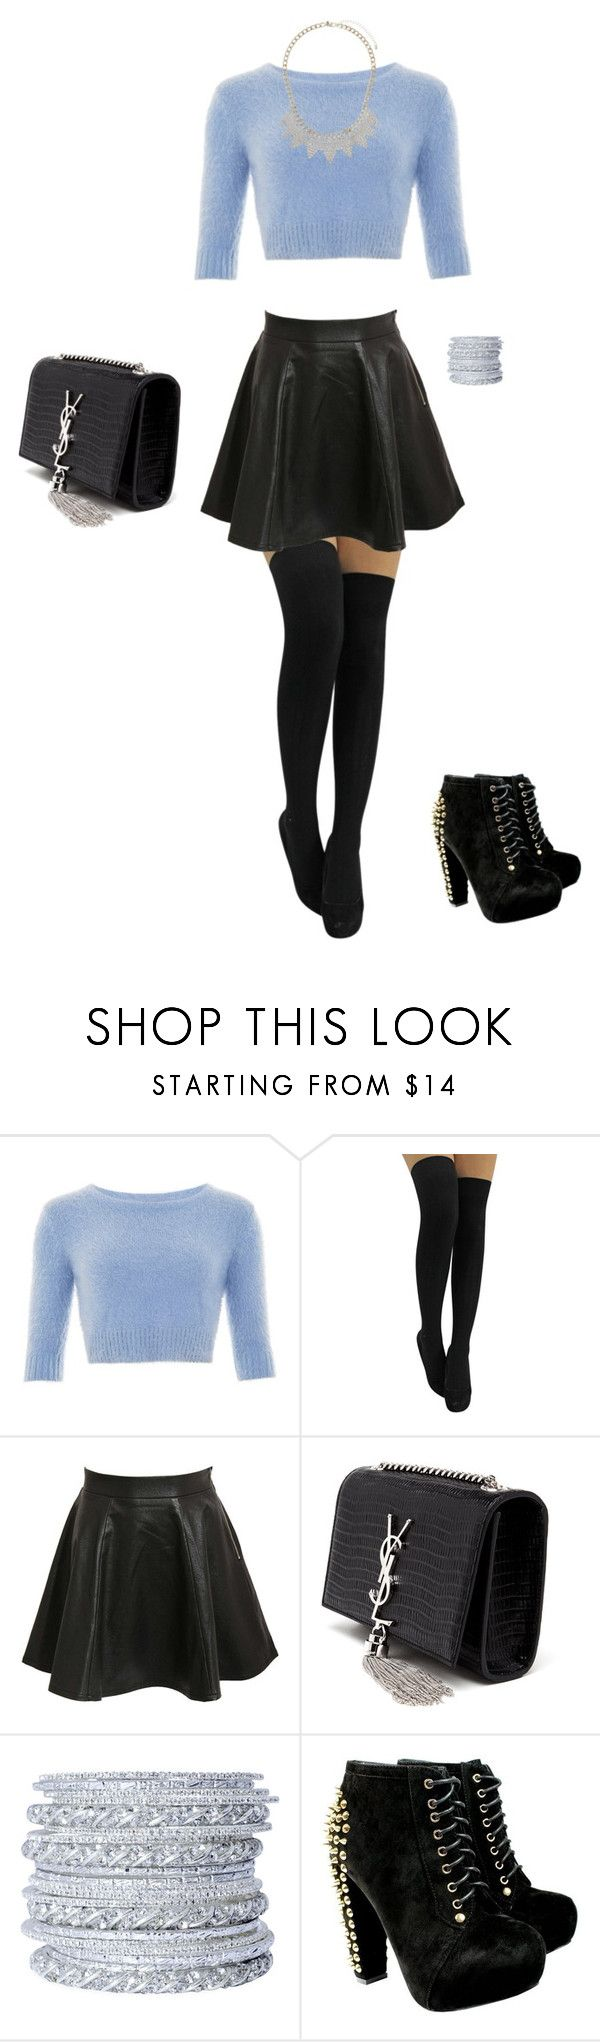 """""""<3"""" by sylver-fang on Polyvore featuring Pilot, Yves Saint Laurent, Chamak by Priya Kakkar, Miss Selfridge, women's clothing, women, female, woman, misses and juniors"""